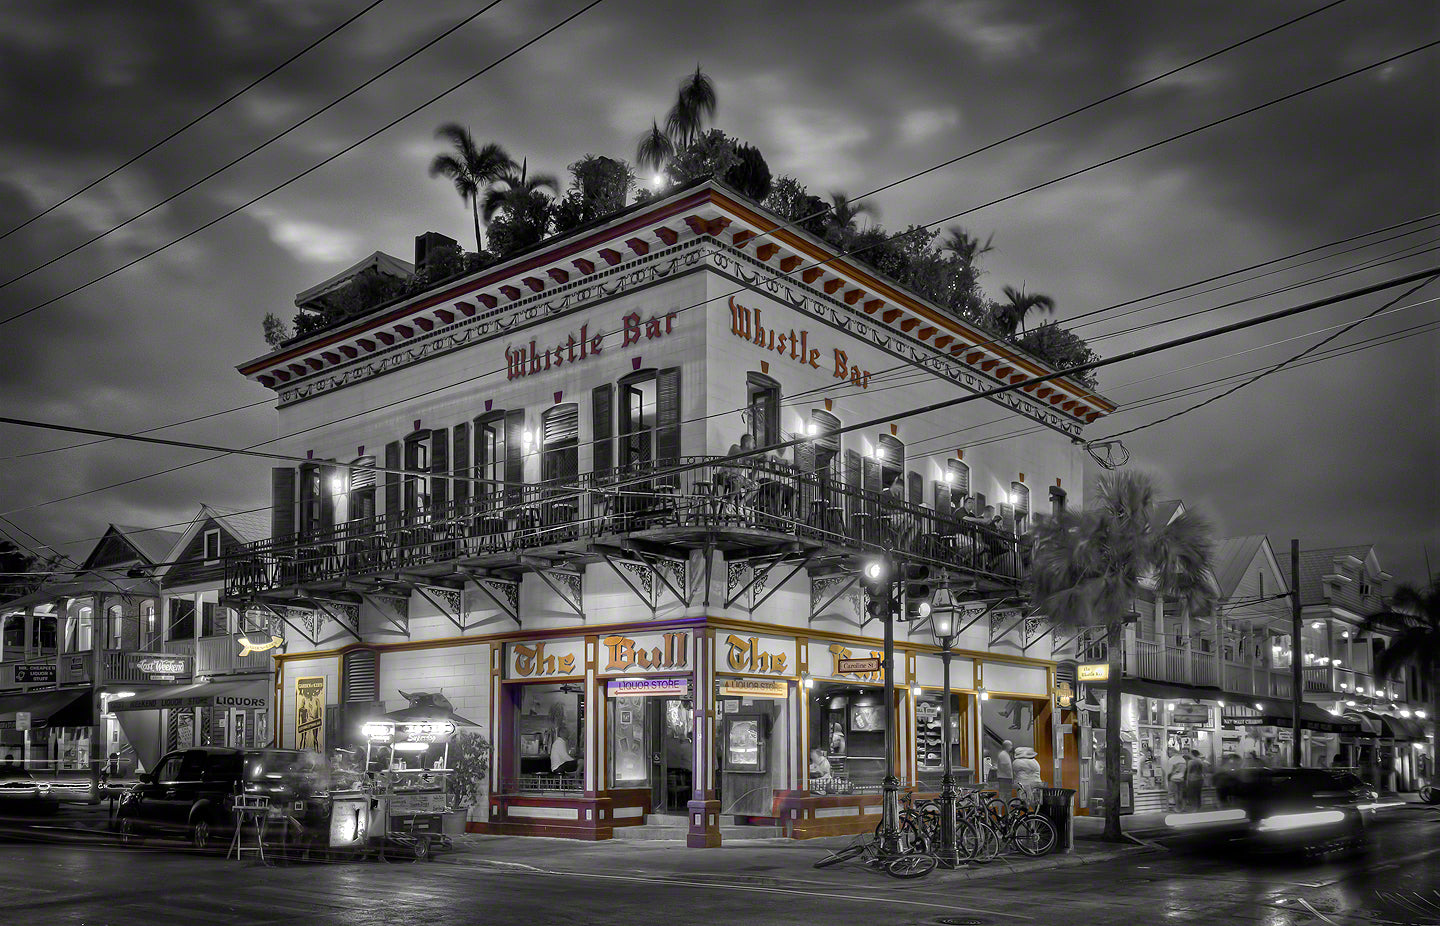 A photo of the Famous Whistle Bar at night in Key West, Florida